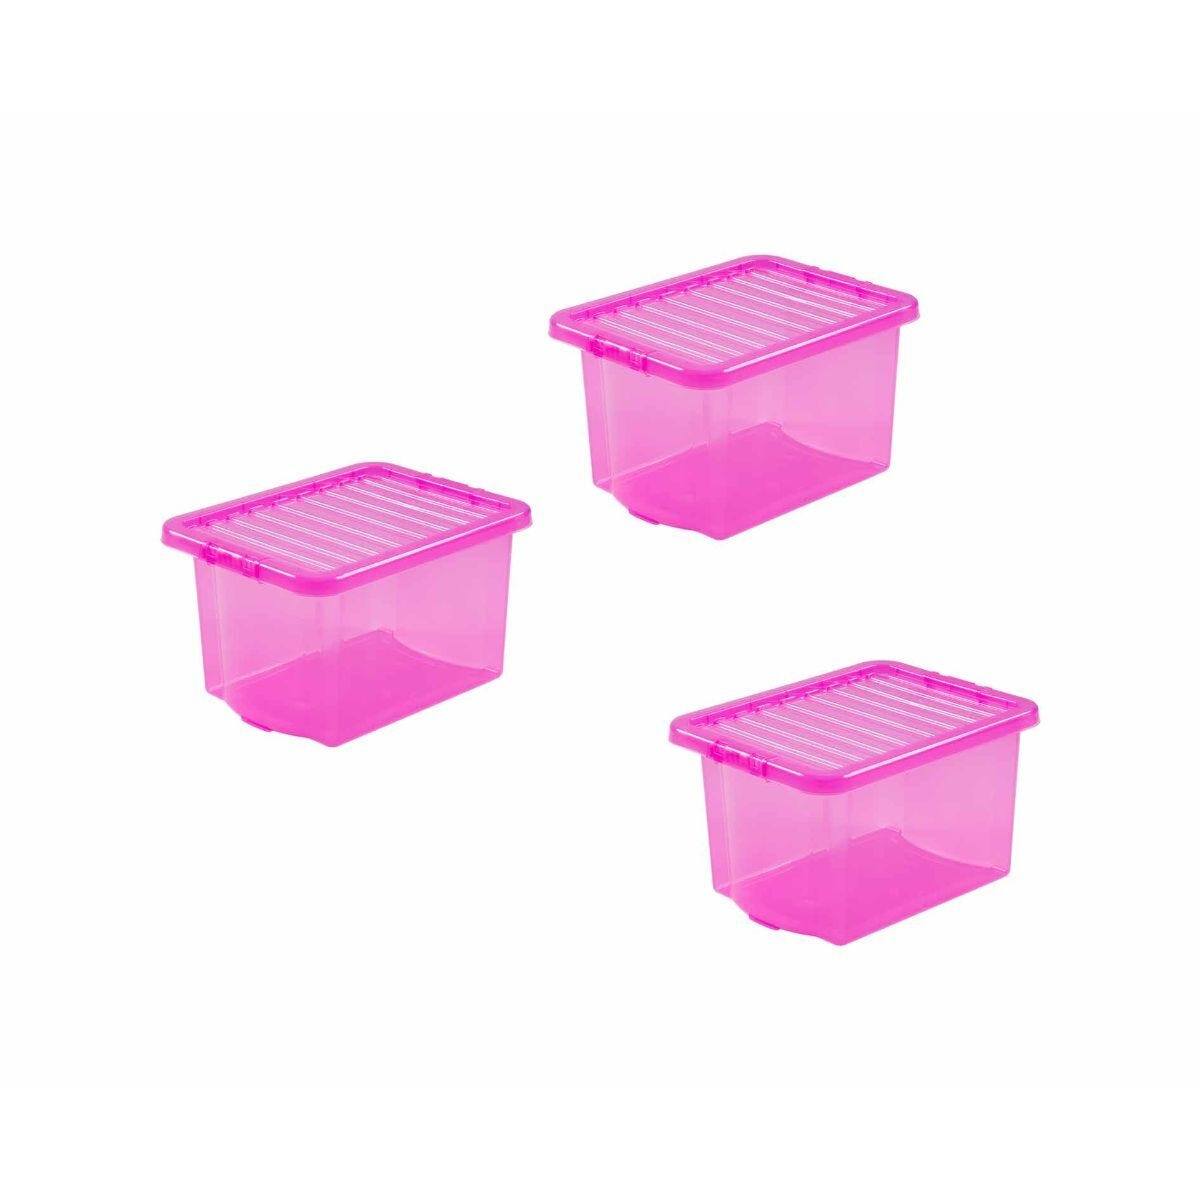 Wham Box and Lid 24 Litre Clear Pack of 3 Pink